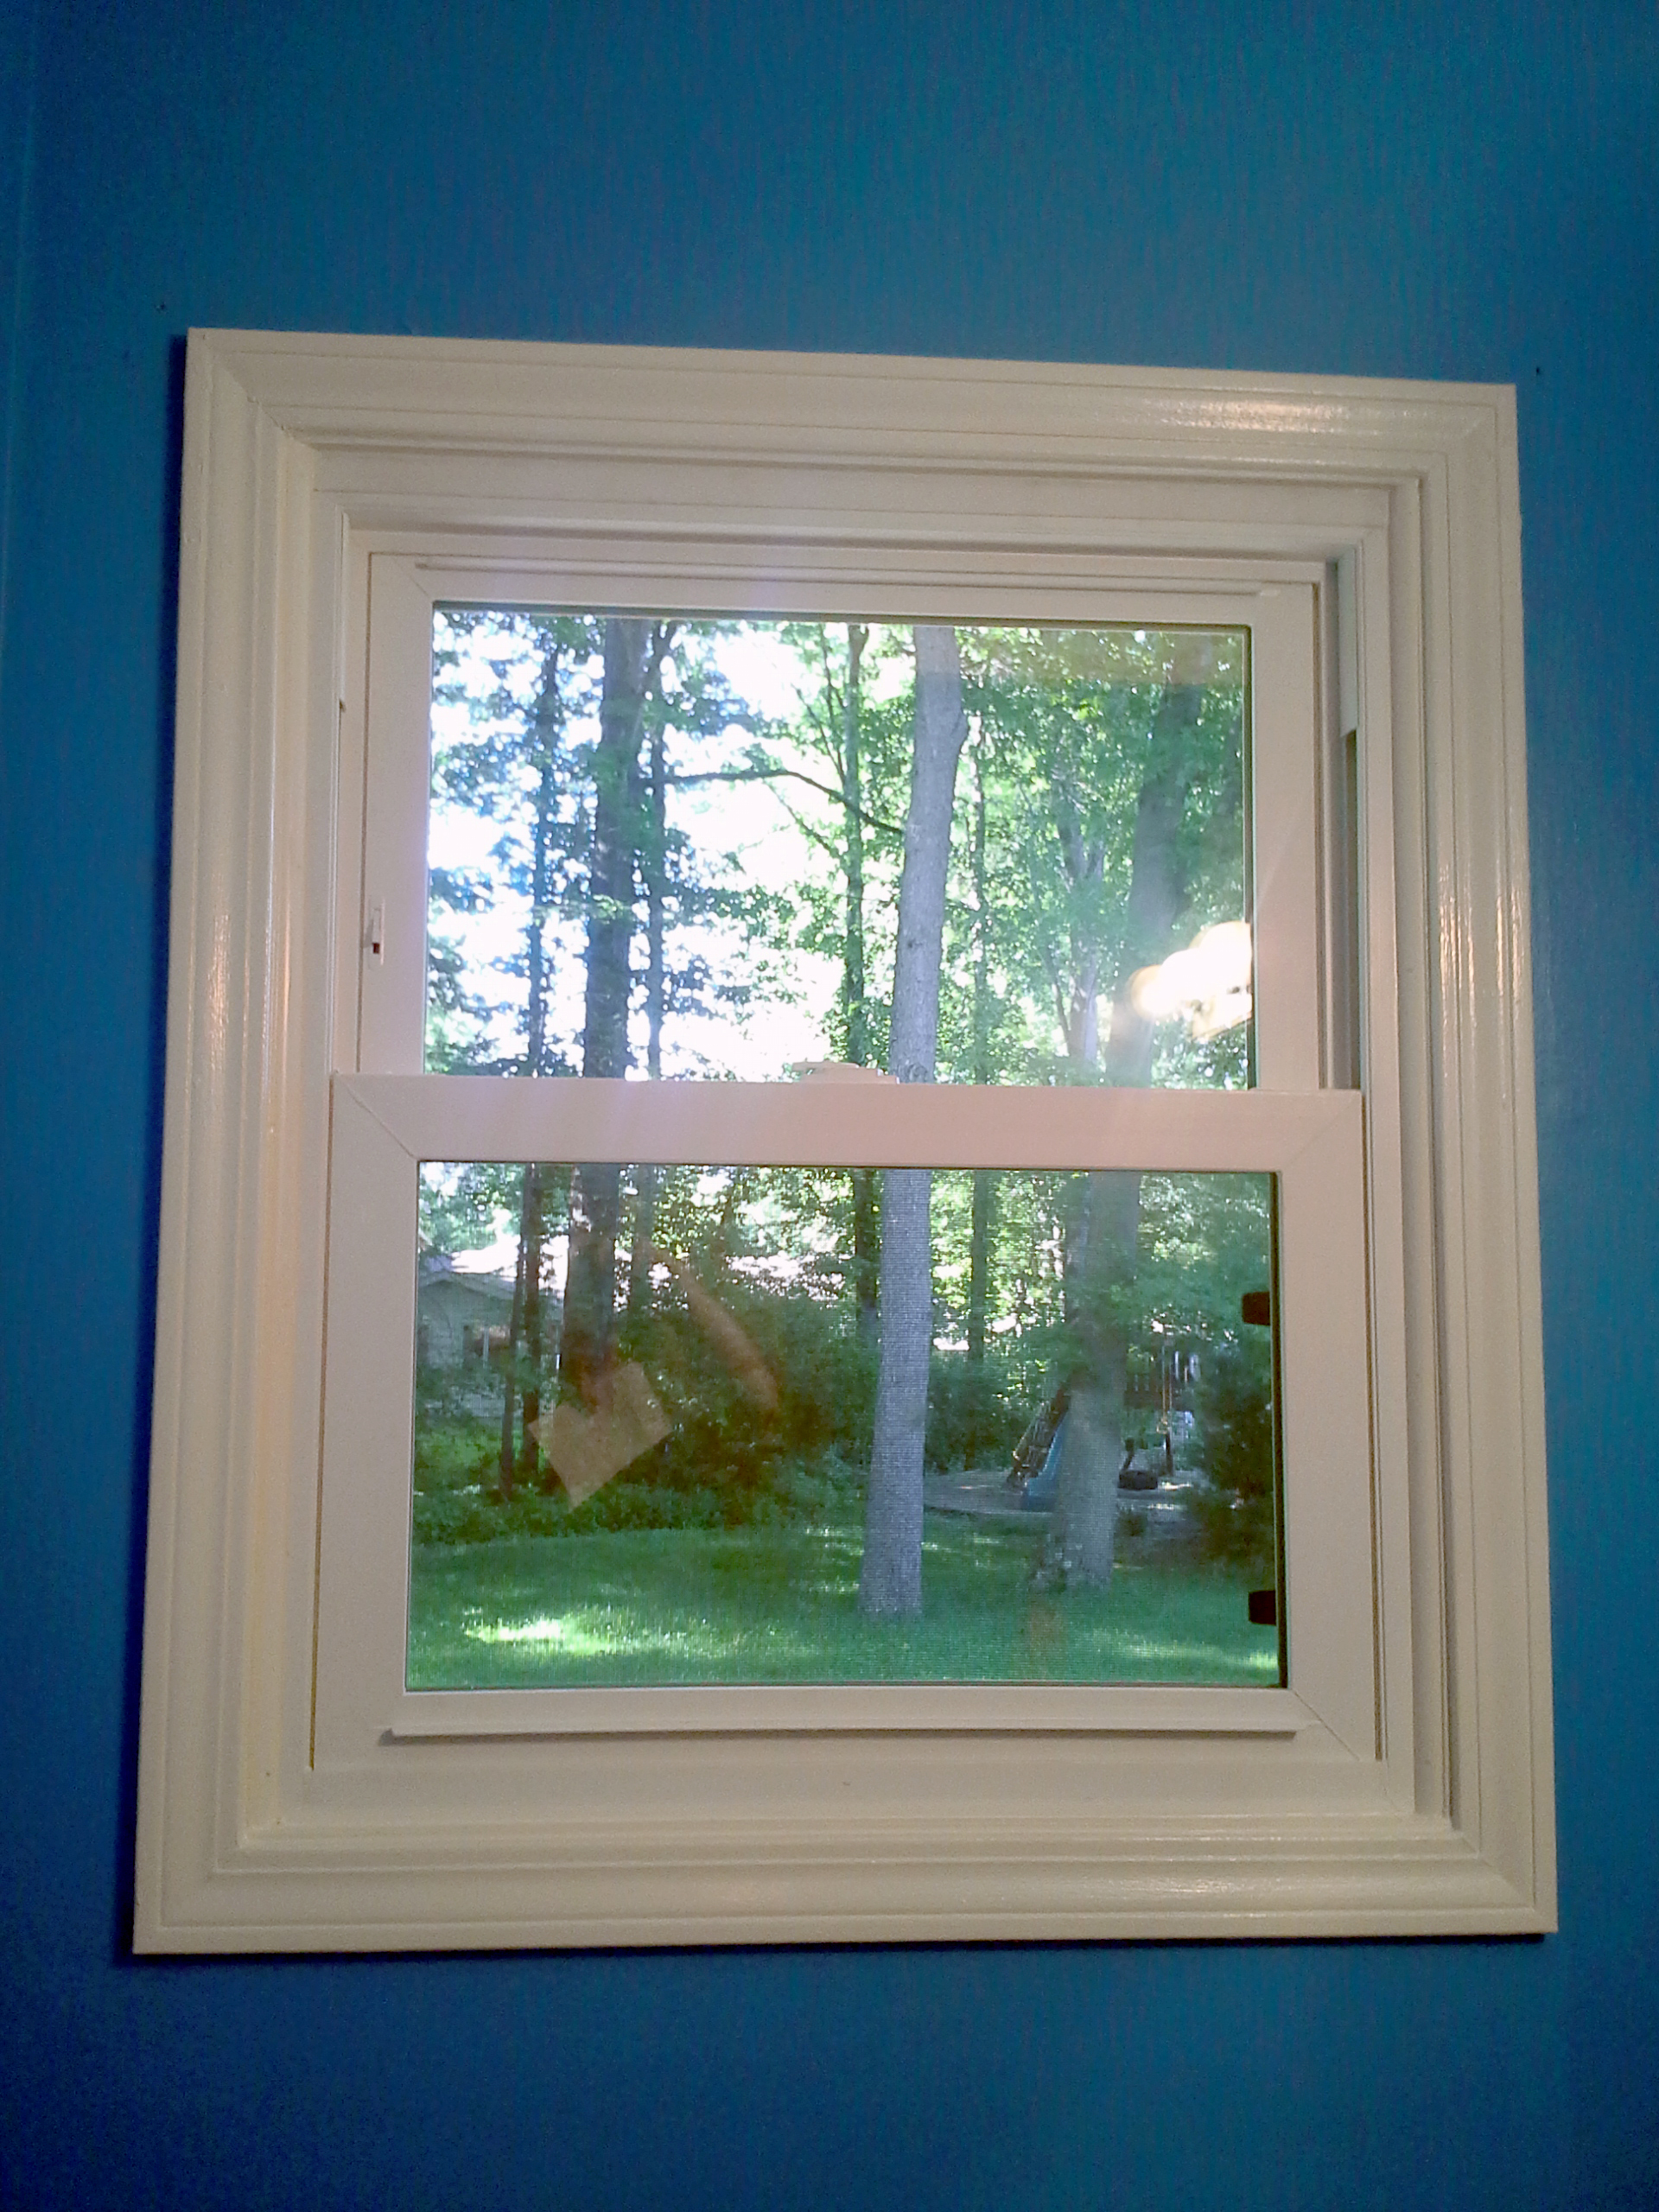 12 new Energy Star-rated windows were installed throughout the house.